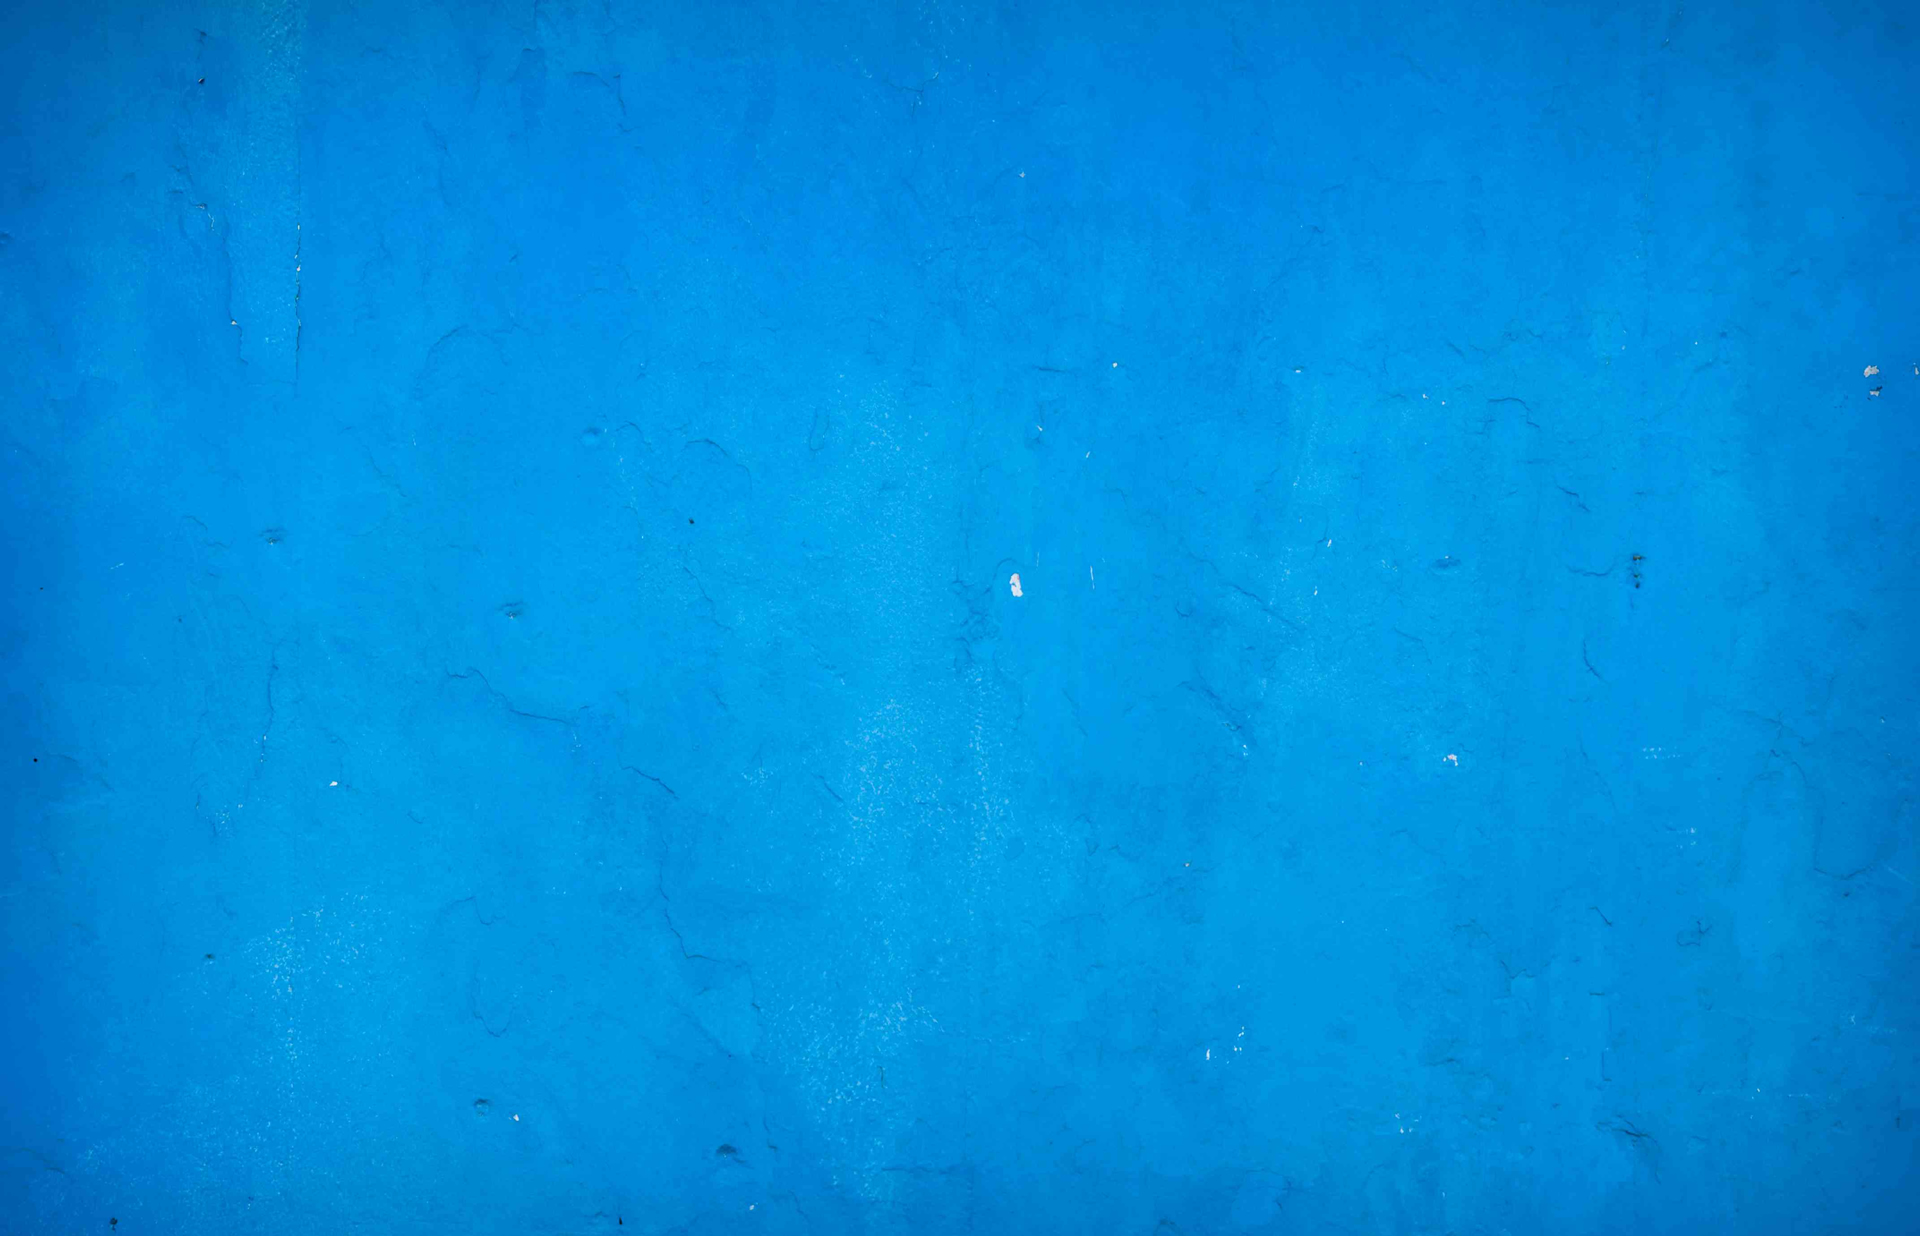 Blue Paint Texture Background